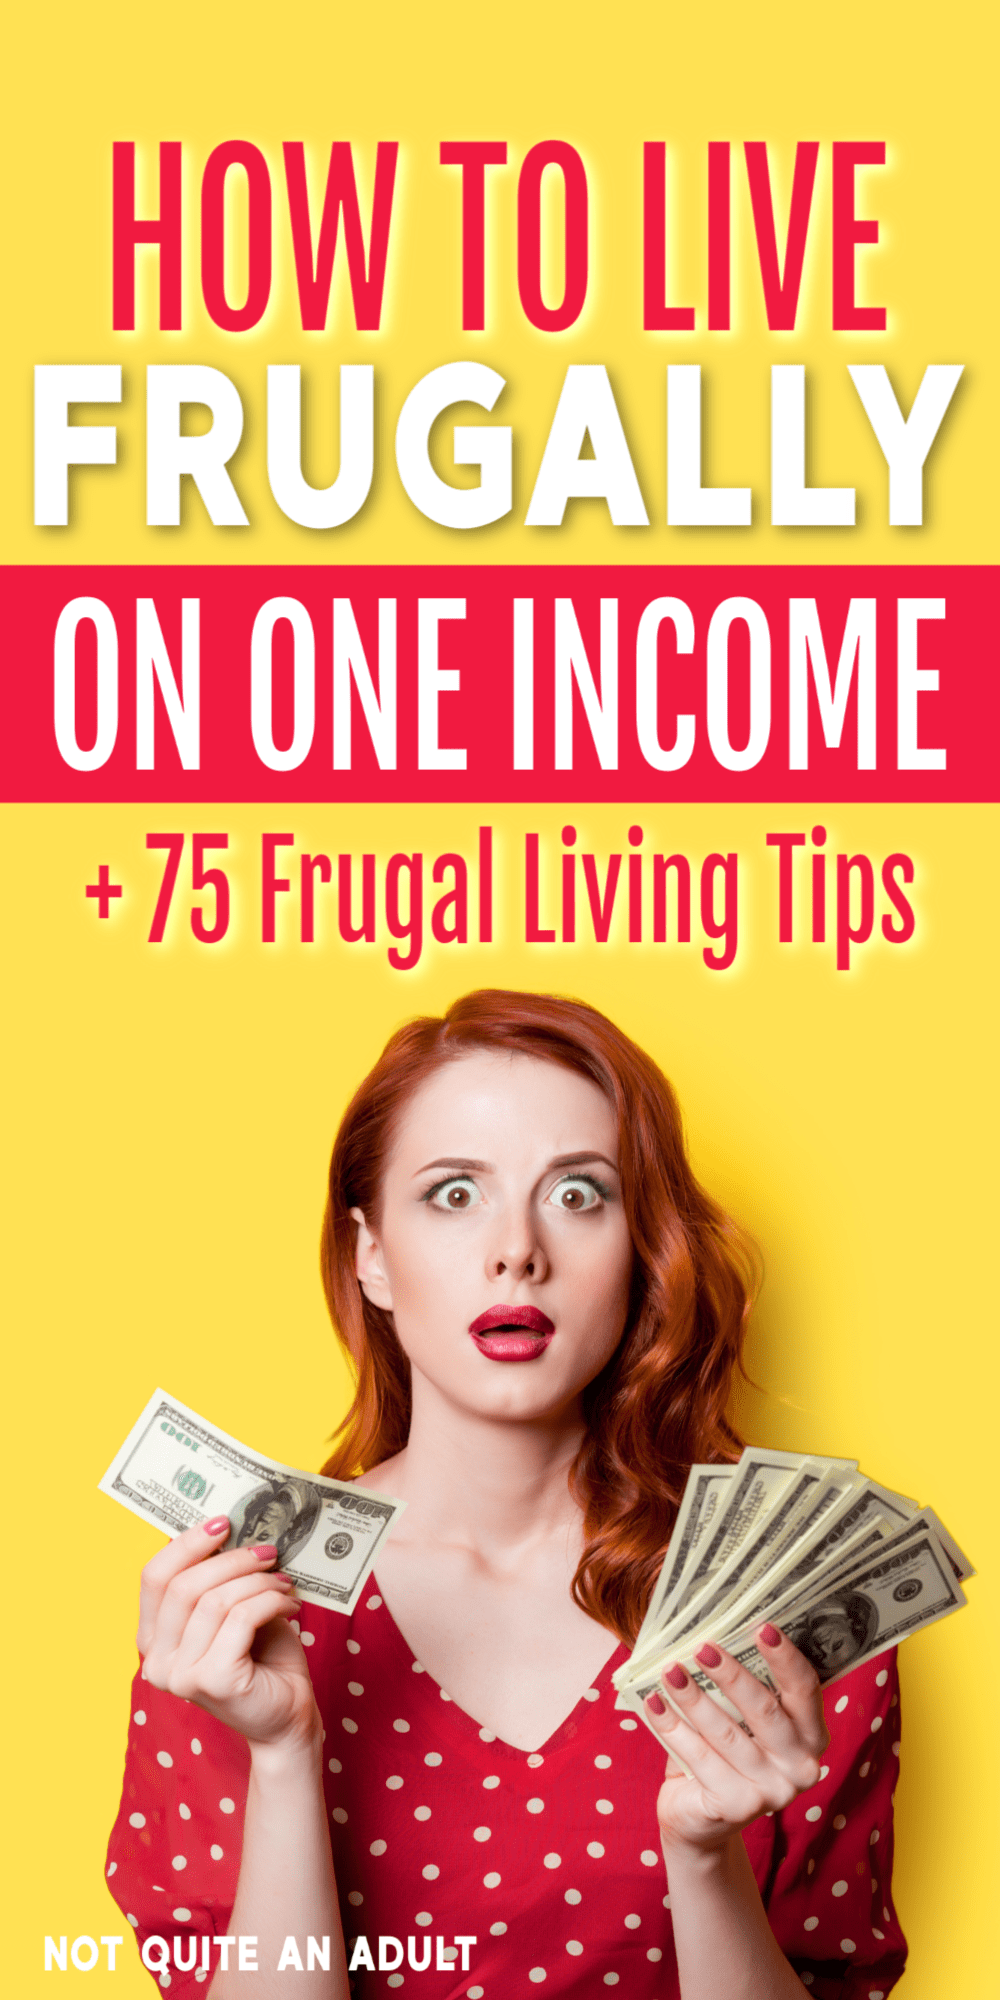 are you struggling to live on a single income? being more frugal could be the answer #frugalliving here is how to live frugally on one income plus 75 useful frugal living tips that can help you save money #save #savemoney